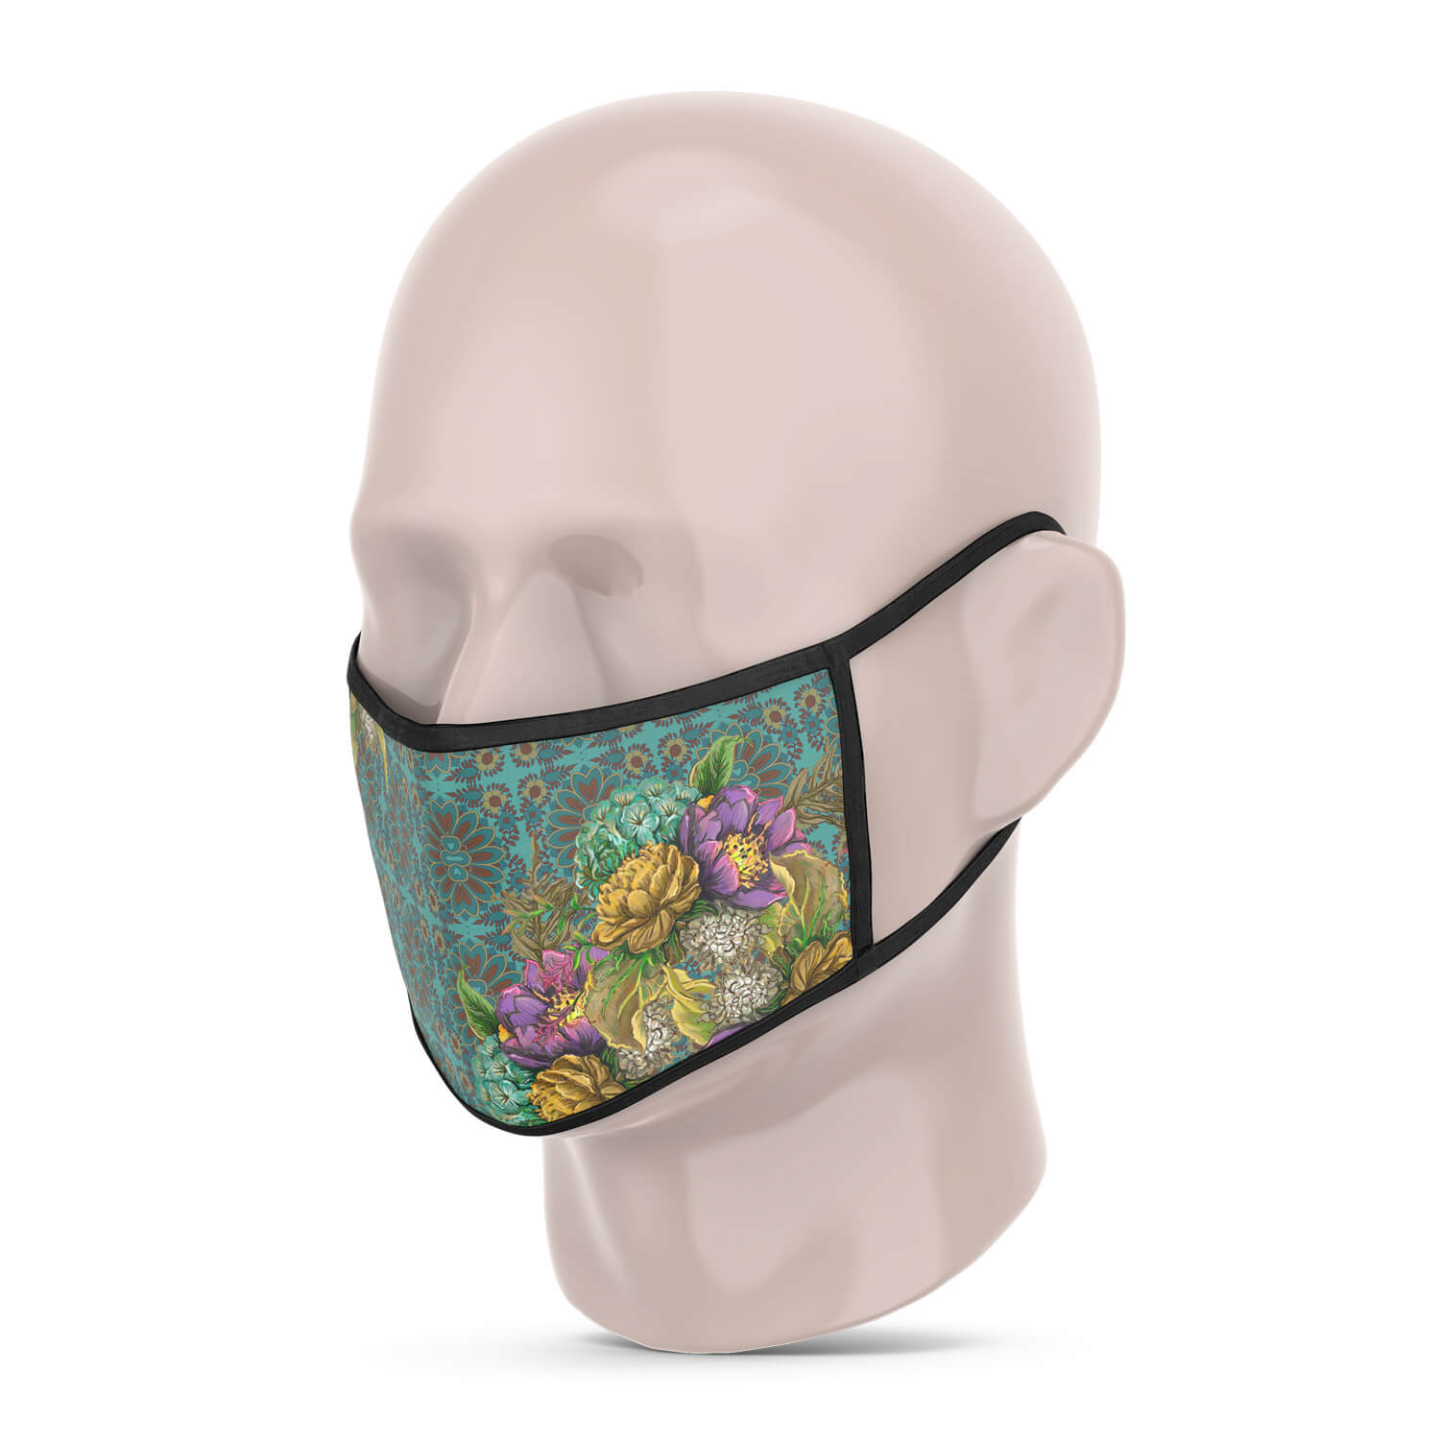 3 Layer Printed Protective Face Mask - Pack of 3 Peacock-Sea Green-Pink